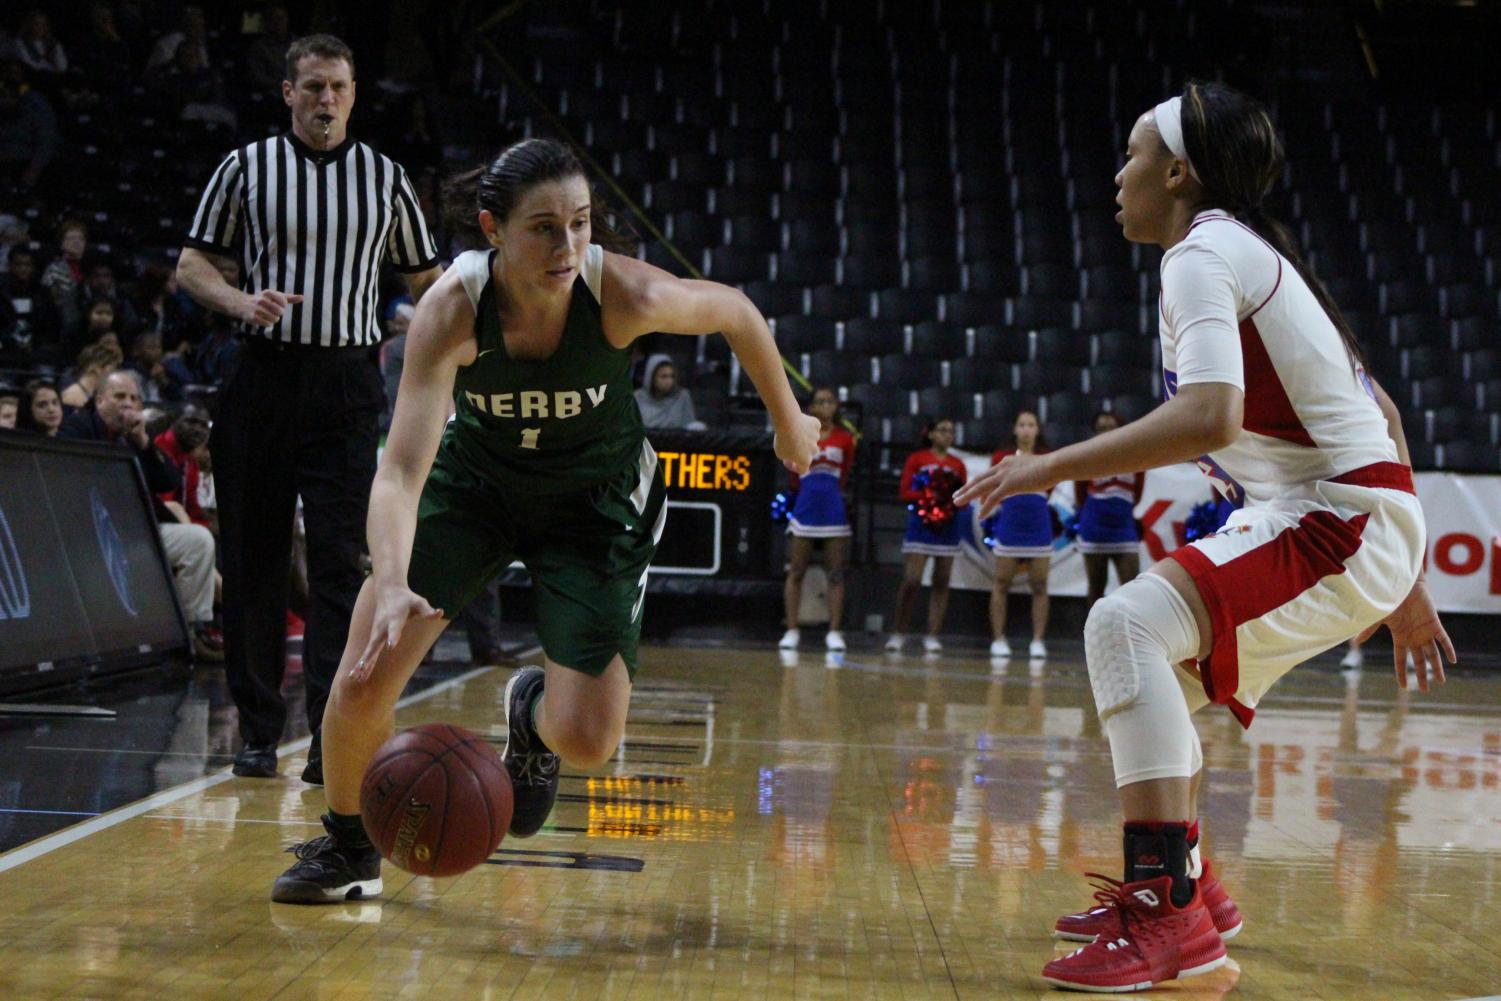 Sophomore+Sydney+Nilles+prepares+to+dribble+past+her+opponent.